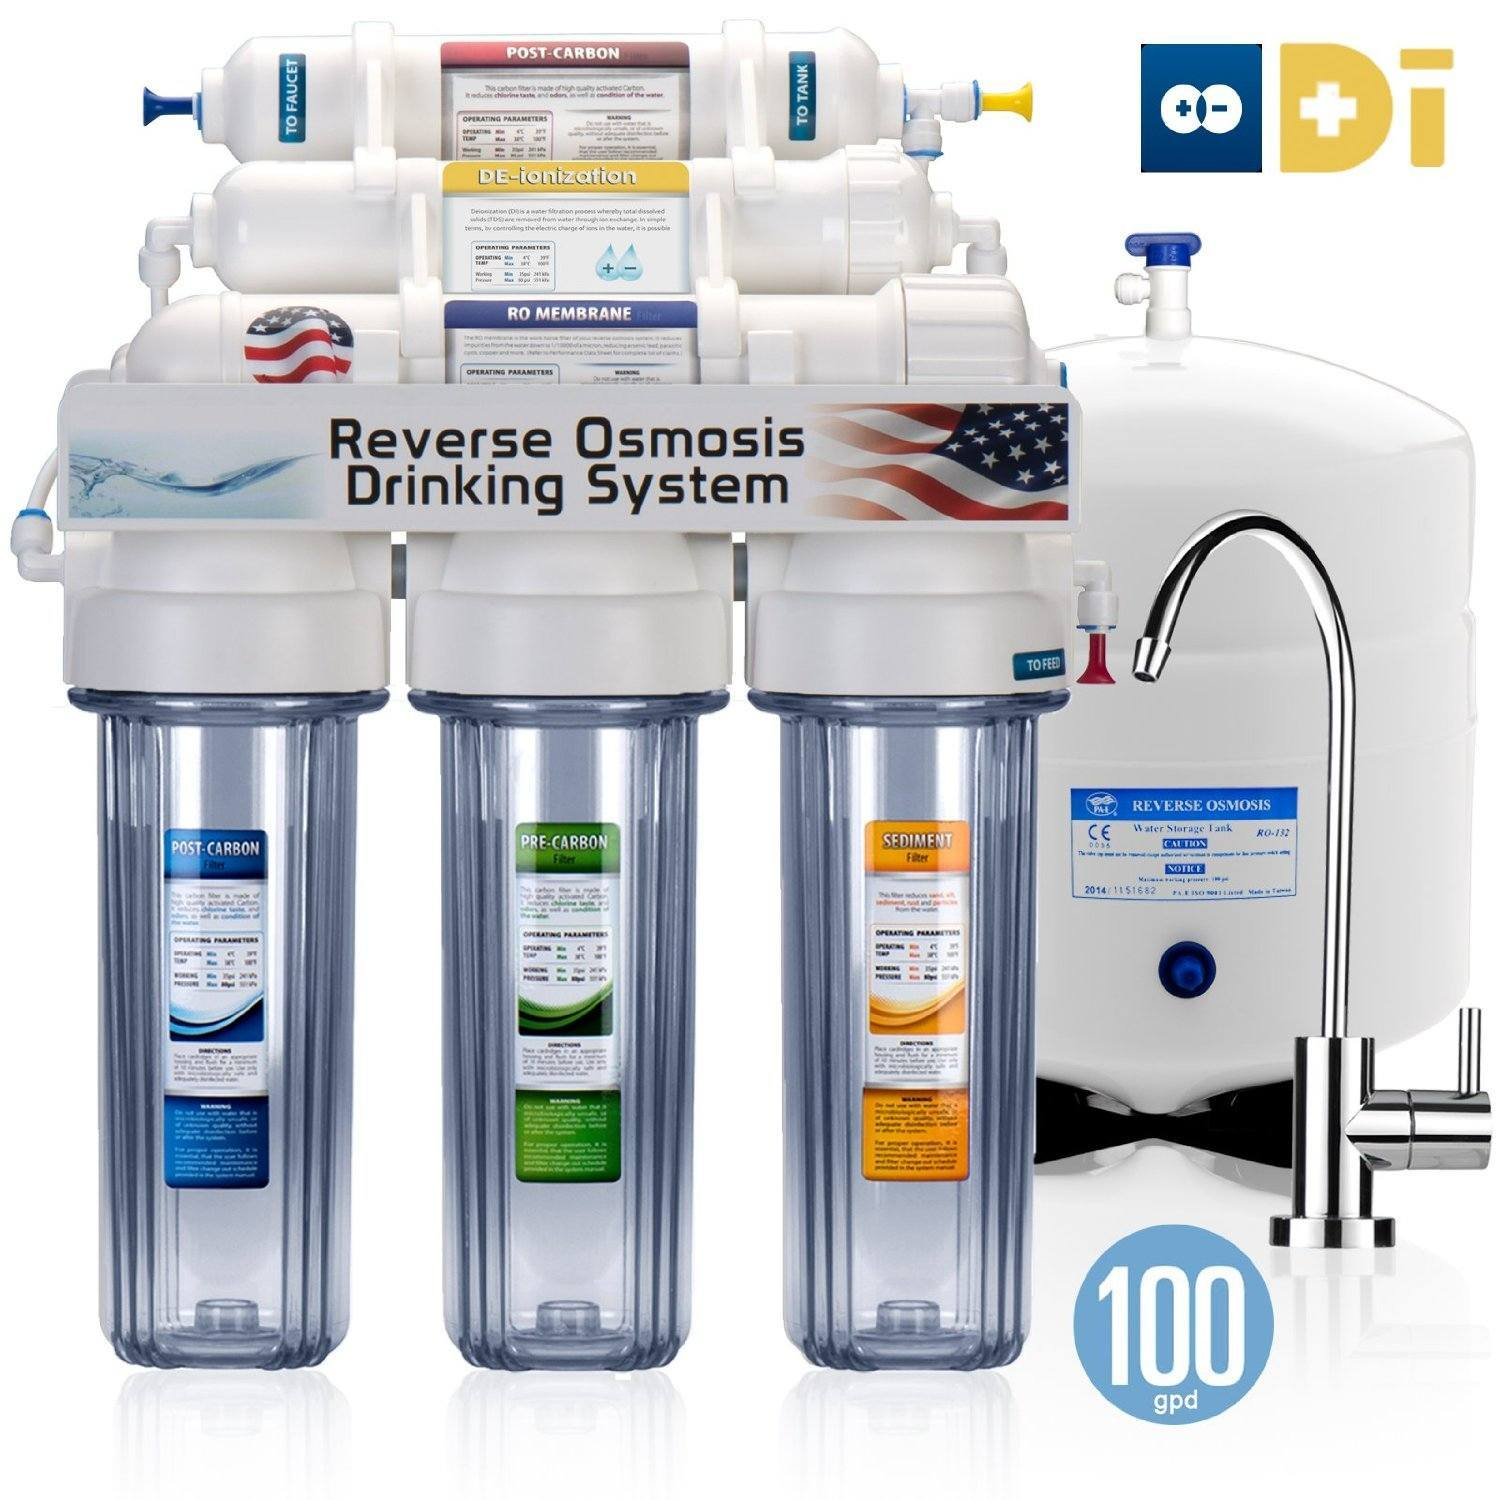 4.Express Water 6 Stage UV Ultra-Violet Sterilizer Reverse Osmosis